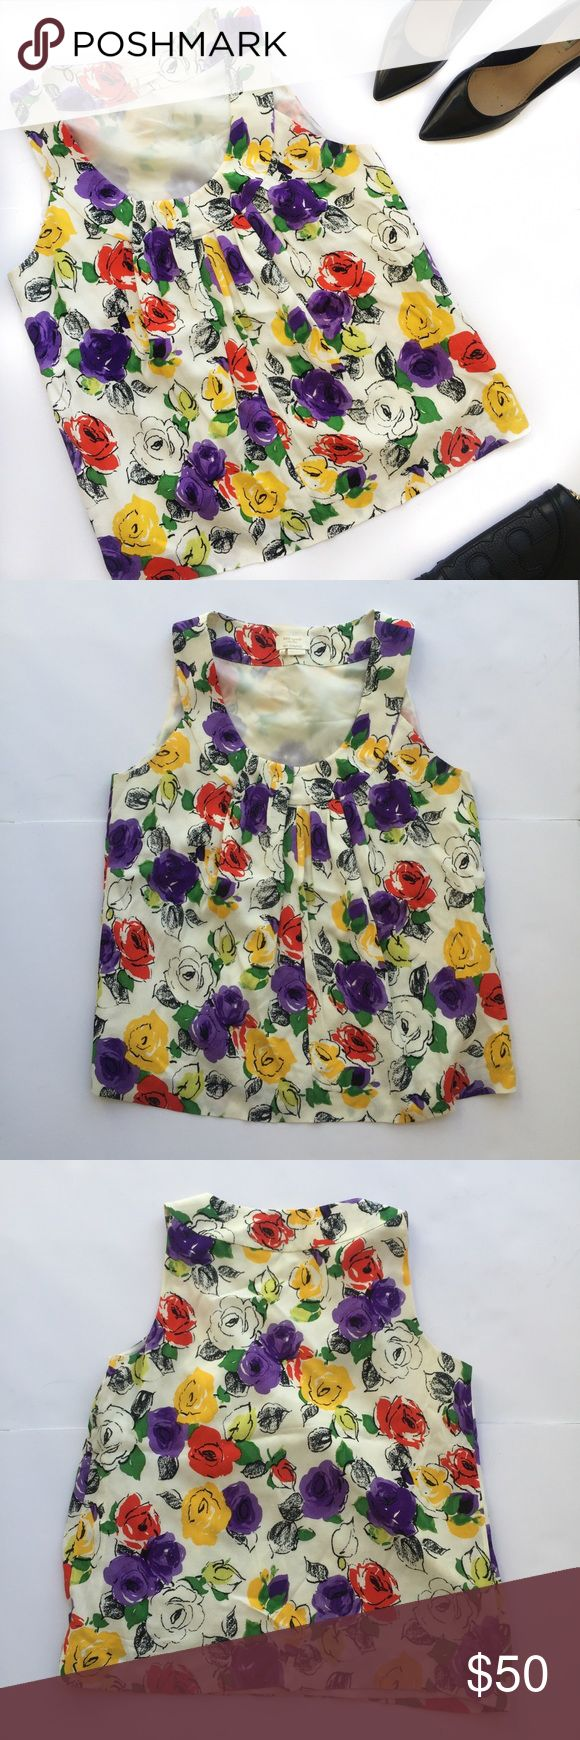 Kate Spade Floral Top Kate Spade sleeveless top with vibrant flowers of various colors on a cream background; perfect condition kate spade Tops